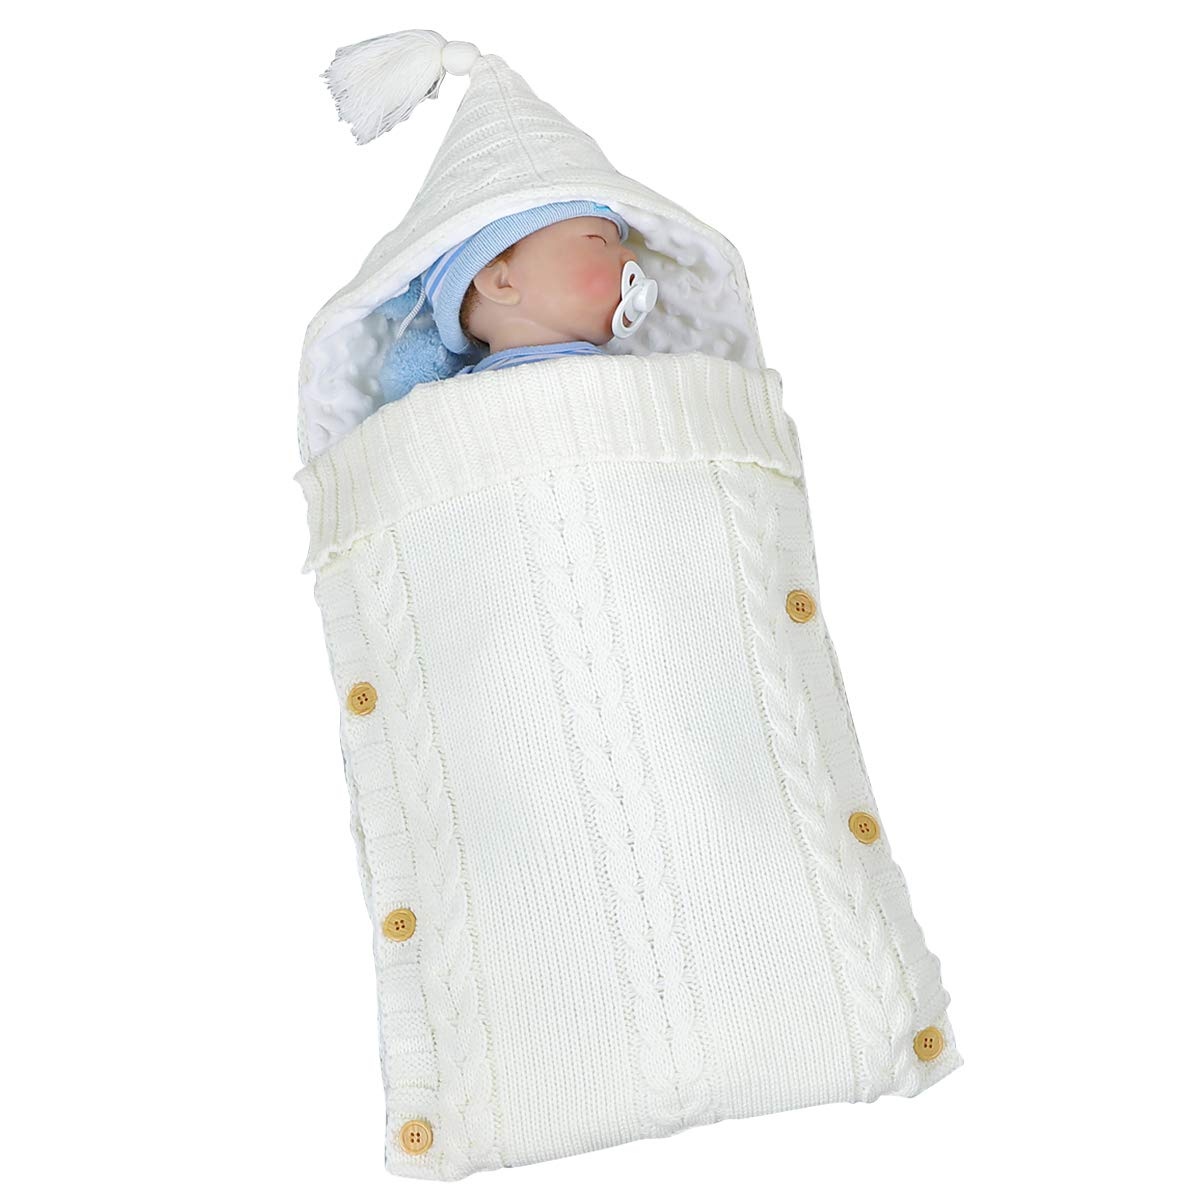 Rehomy Newborn Baby Swaddle Blanket, Knitted Warm Baby Sleeping Wrap Bag Minky Dot Sleep Sack Stroller Wrap for 0-6M Babies